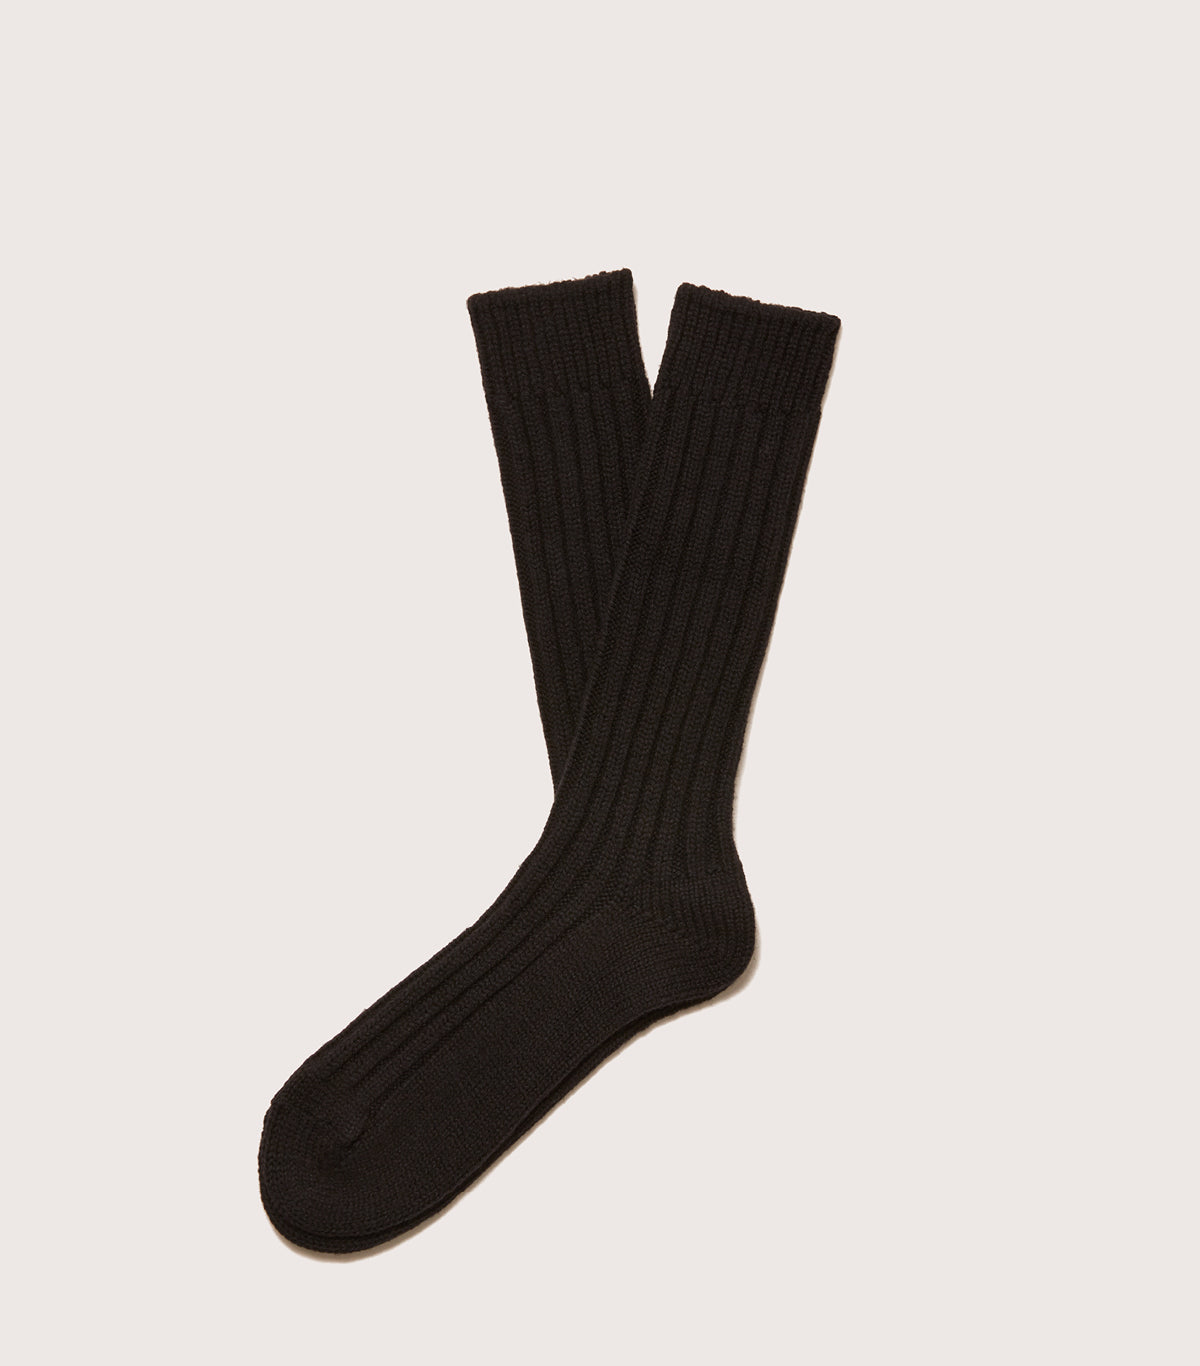 3 Pack Wool Socks